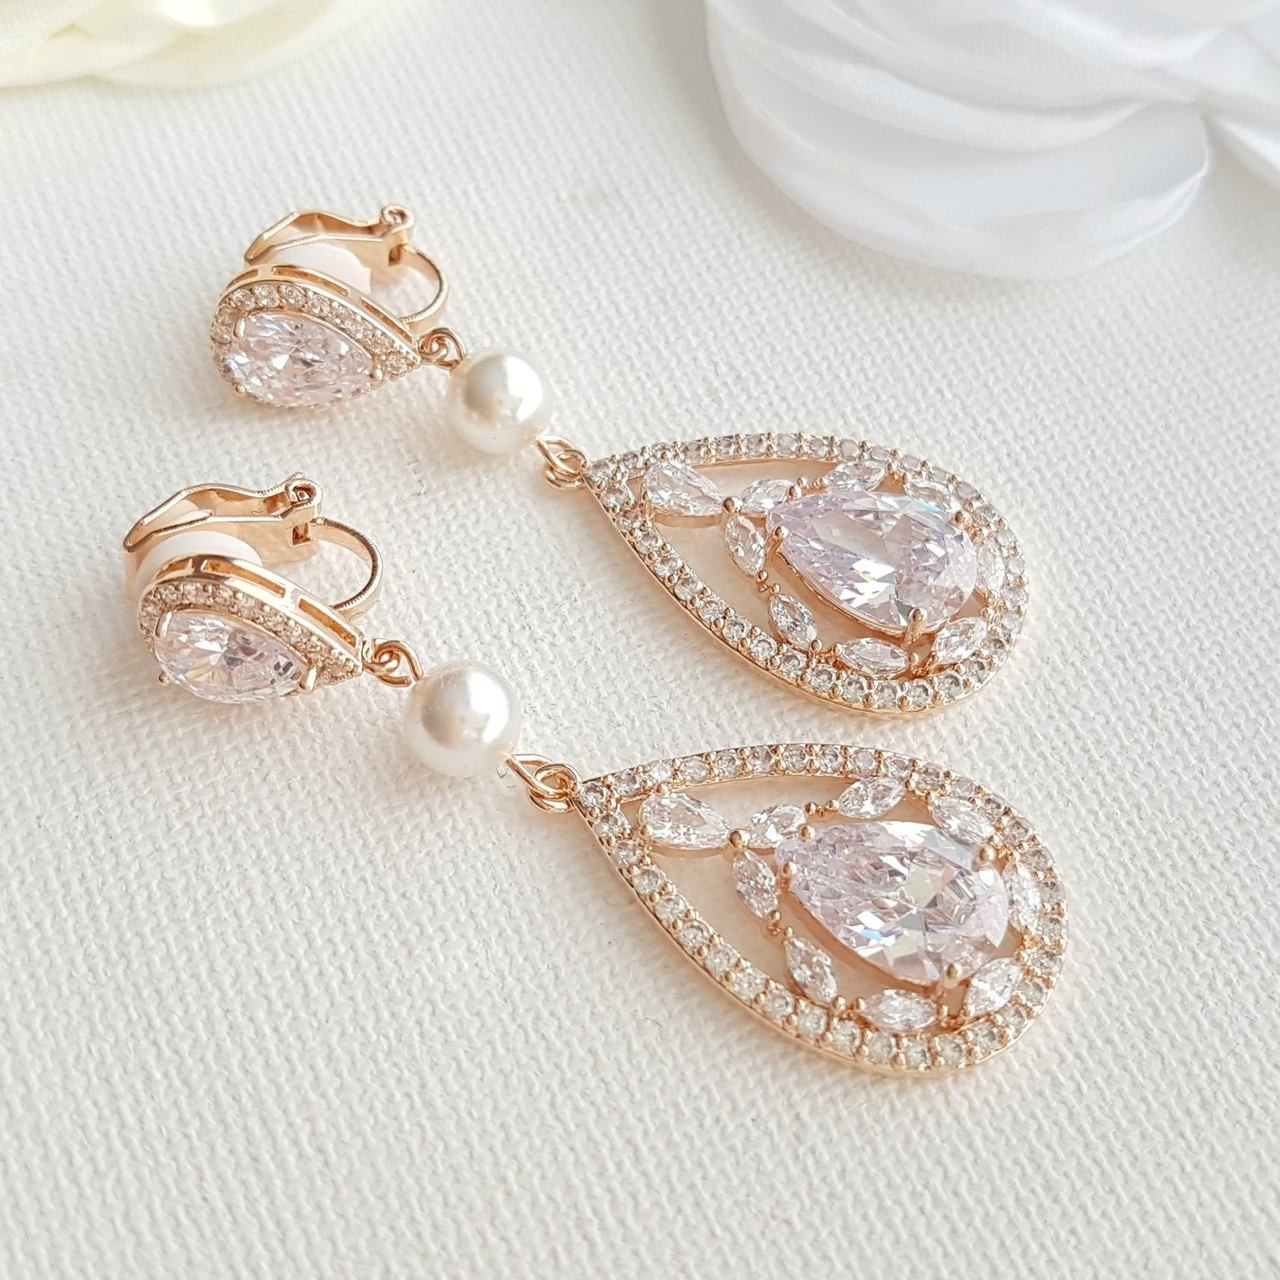 Rose Gold Bridal Earrings Clip On Wedding Jewelry Long Pearl